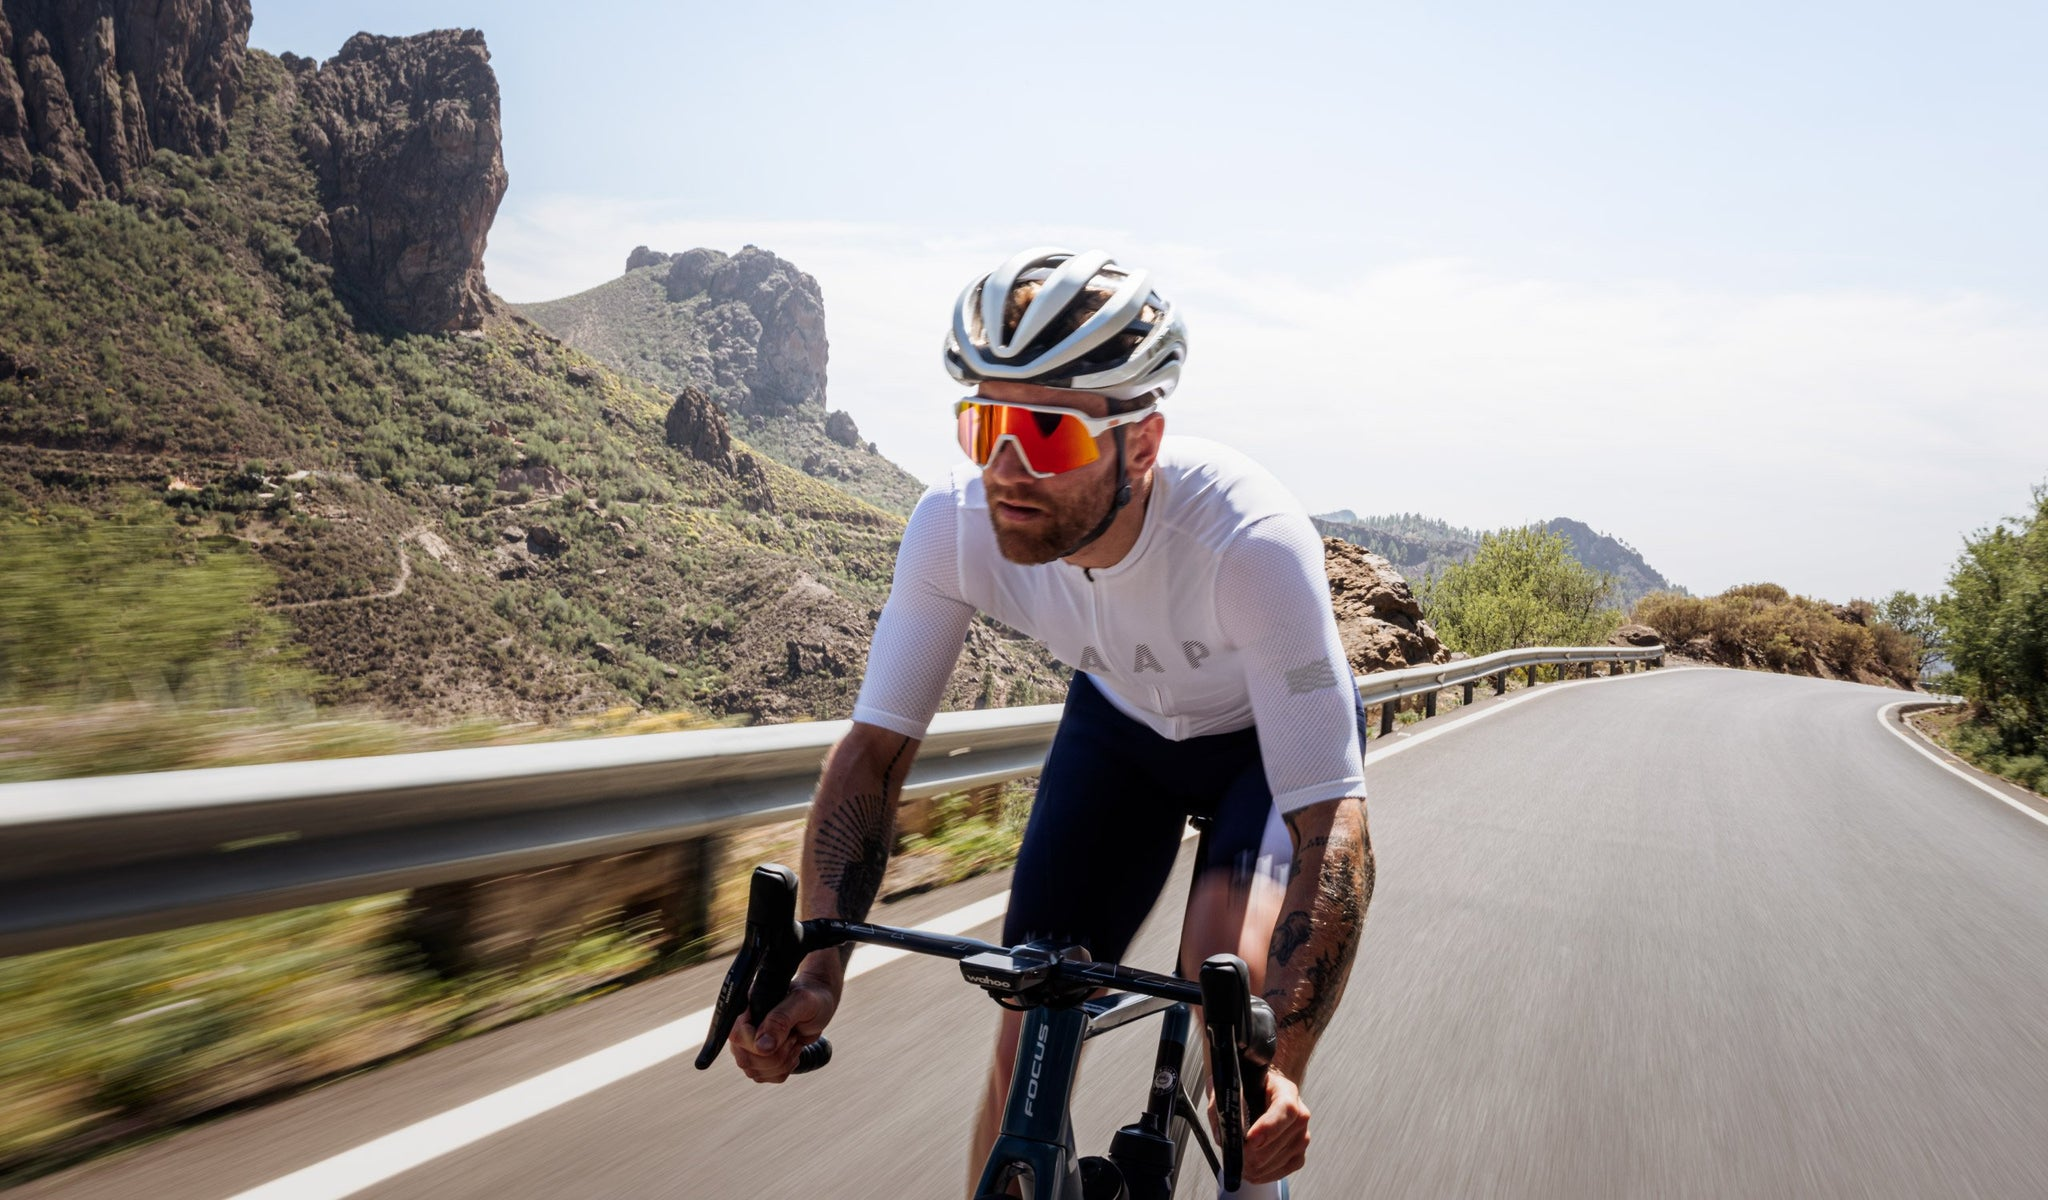 MAAP Echo Pro Base Cycling Jersey in White for riding in warm weather conditions.